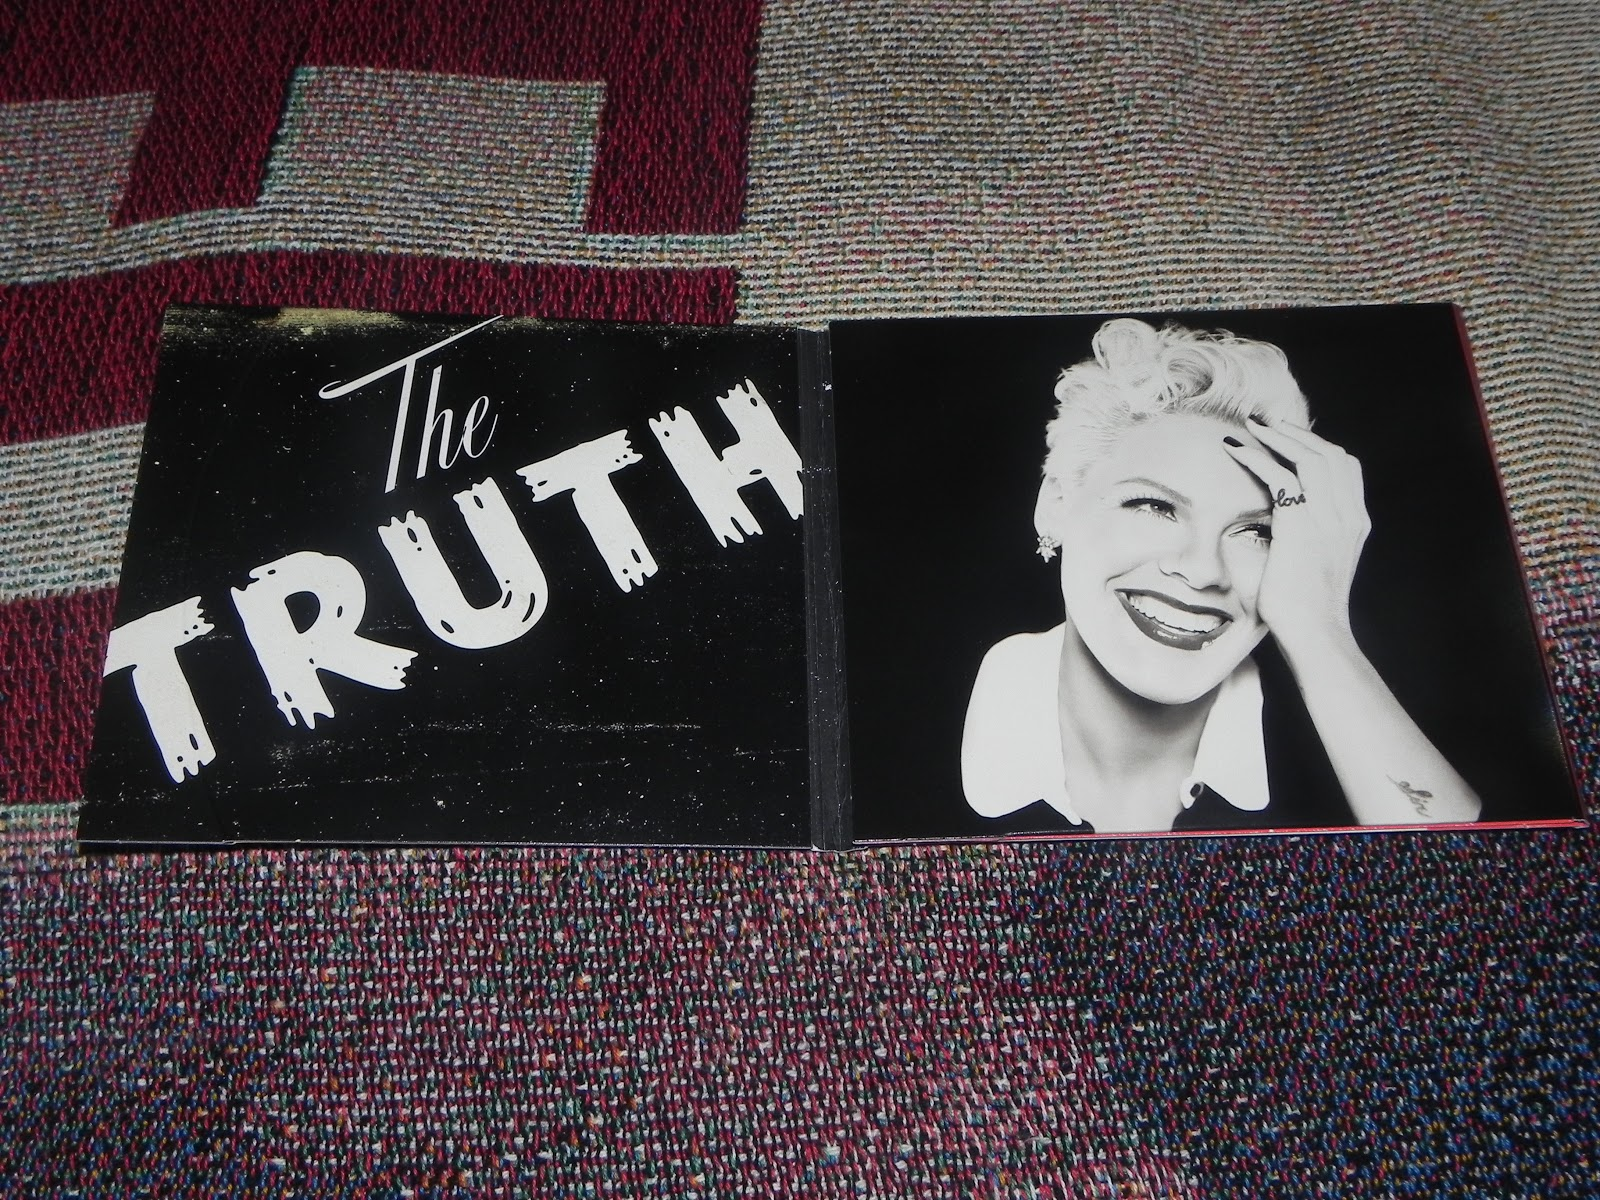 publicaf233 collection cd dvd the truth about love fan